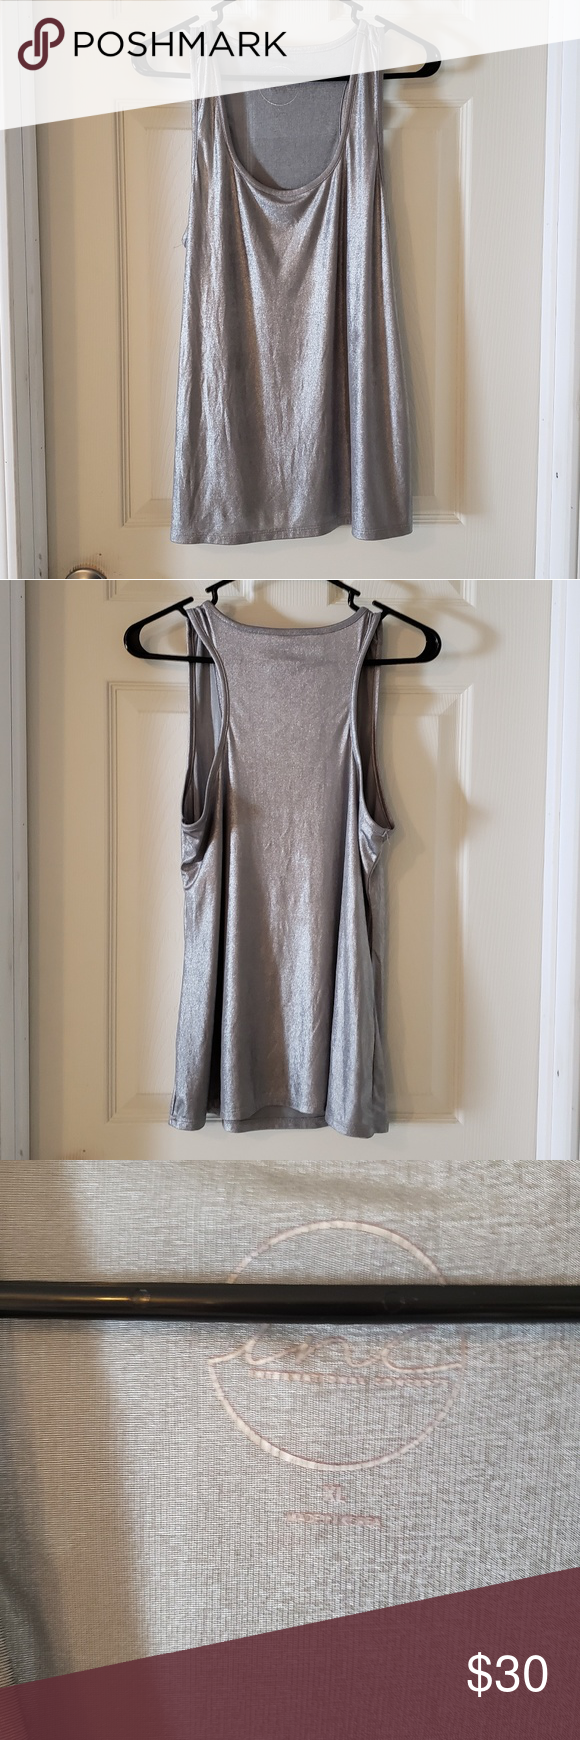 2530a40a9f31f INC International Concepts shimmery tank top INC International Concepts  shimmery tank top